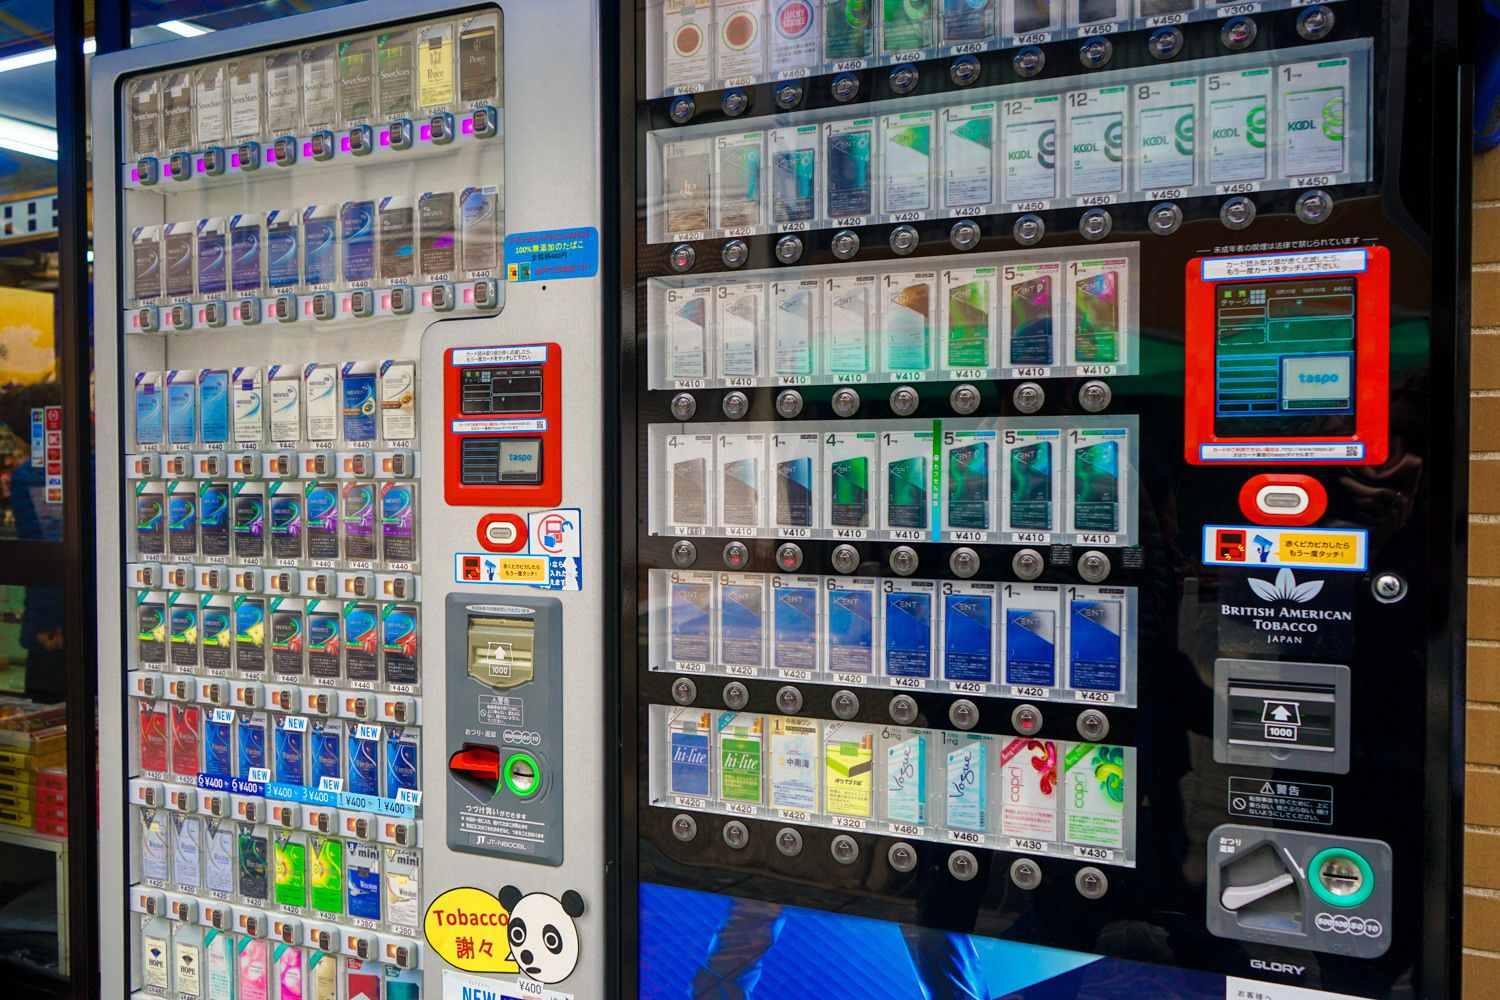 Cigarette Vending Machine Market by Regional Analysis, Types, Applications, Manufacturers and Forecast by 2023